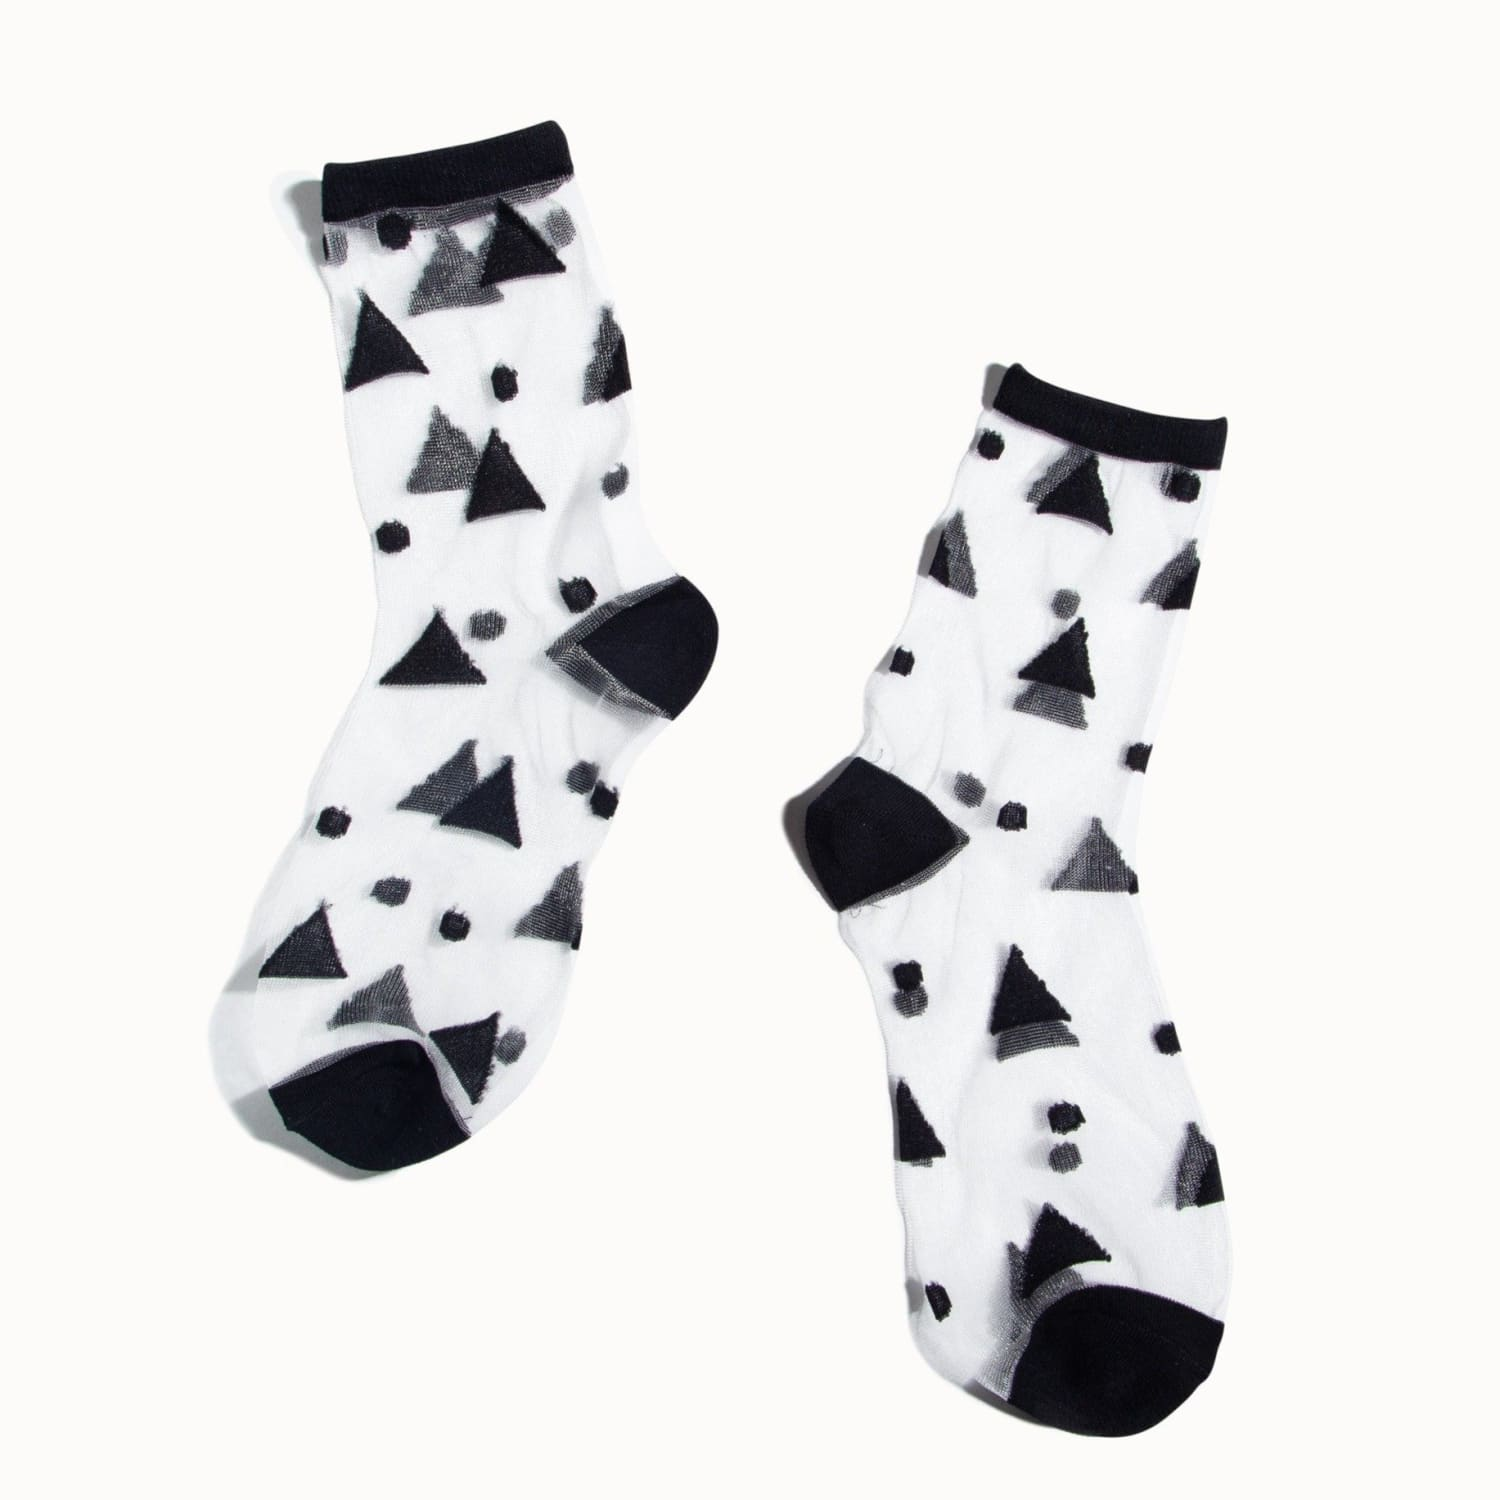 Poketo Sheer Black Triangles Socks Multi Color, Outlines,